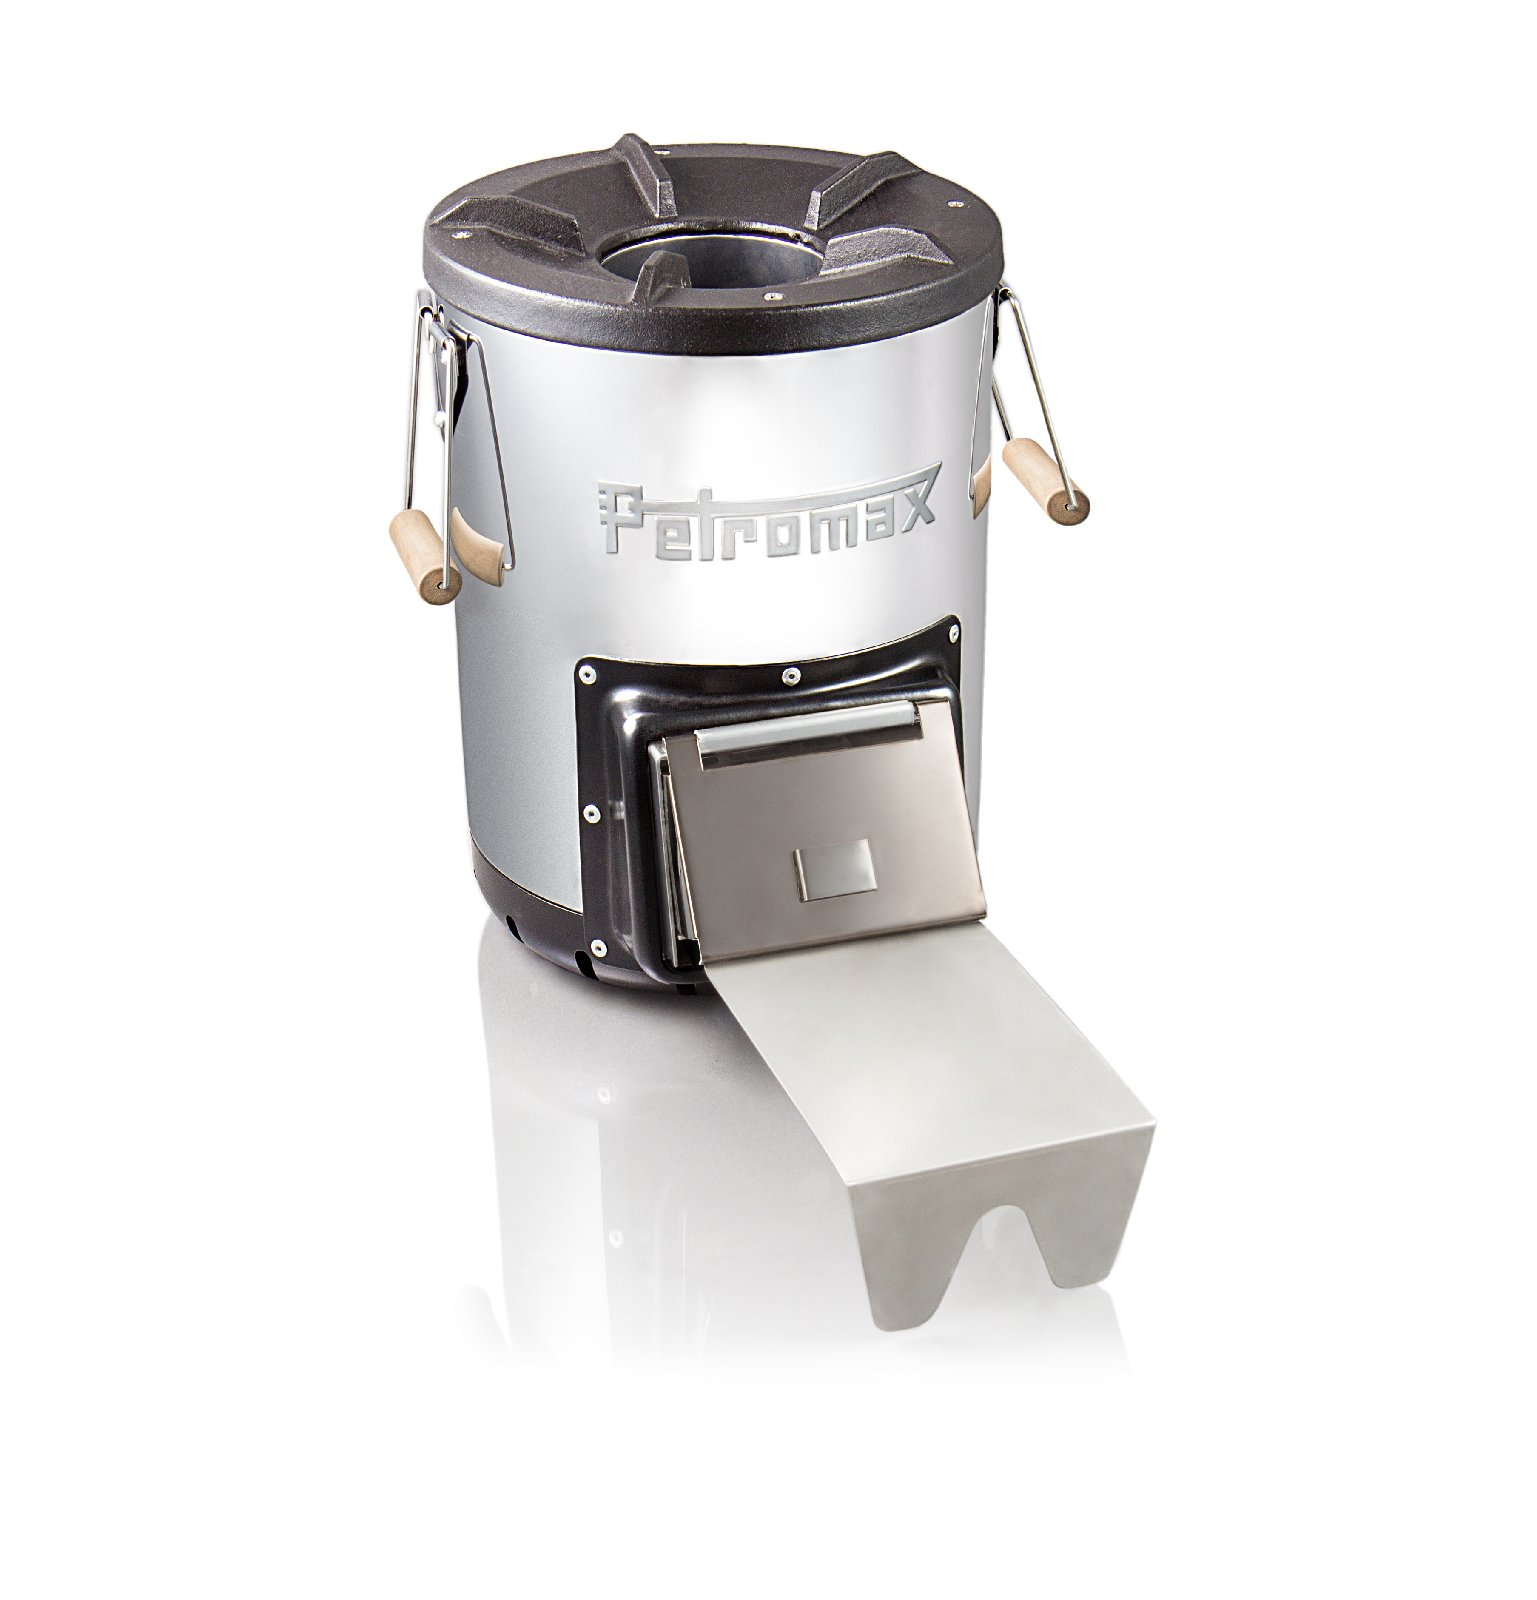 petromax rocket stove rf33 cooker wood gasifier outdoor camping ebay. Black Bedroom Furniture Sets. Home Design Ideas